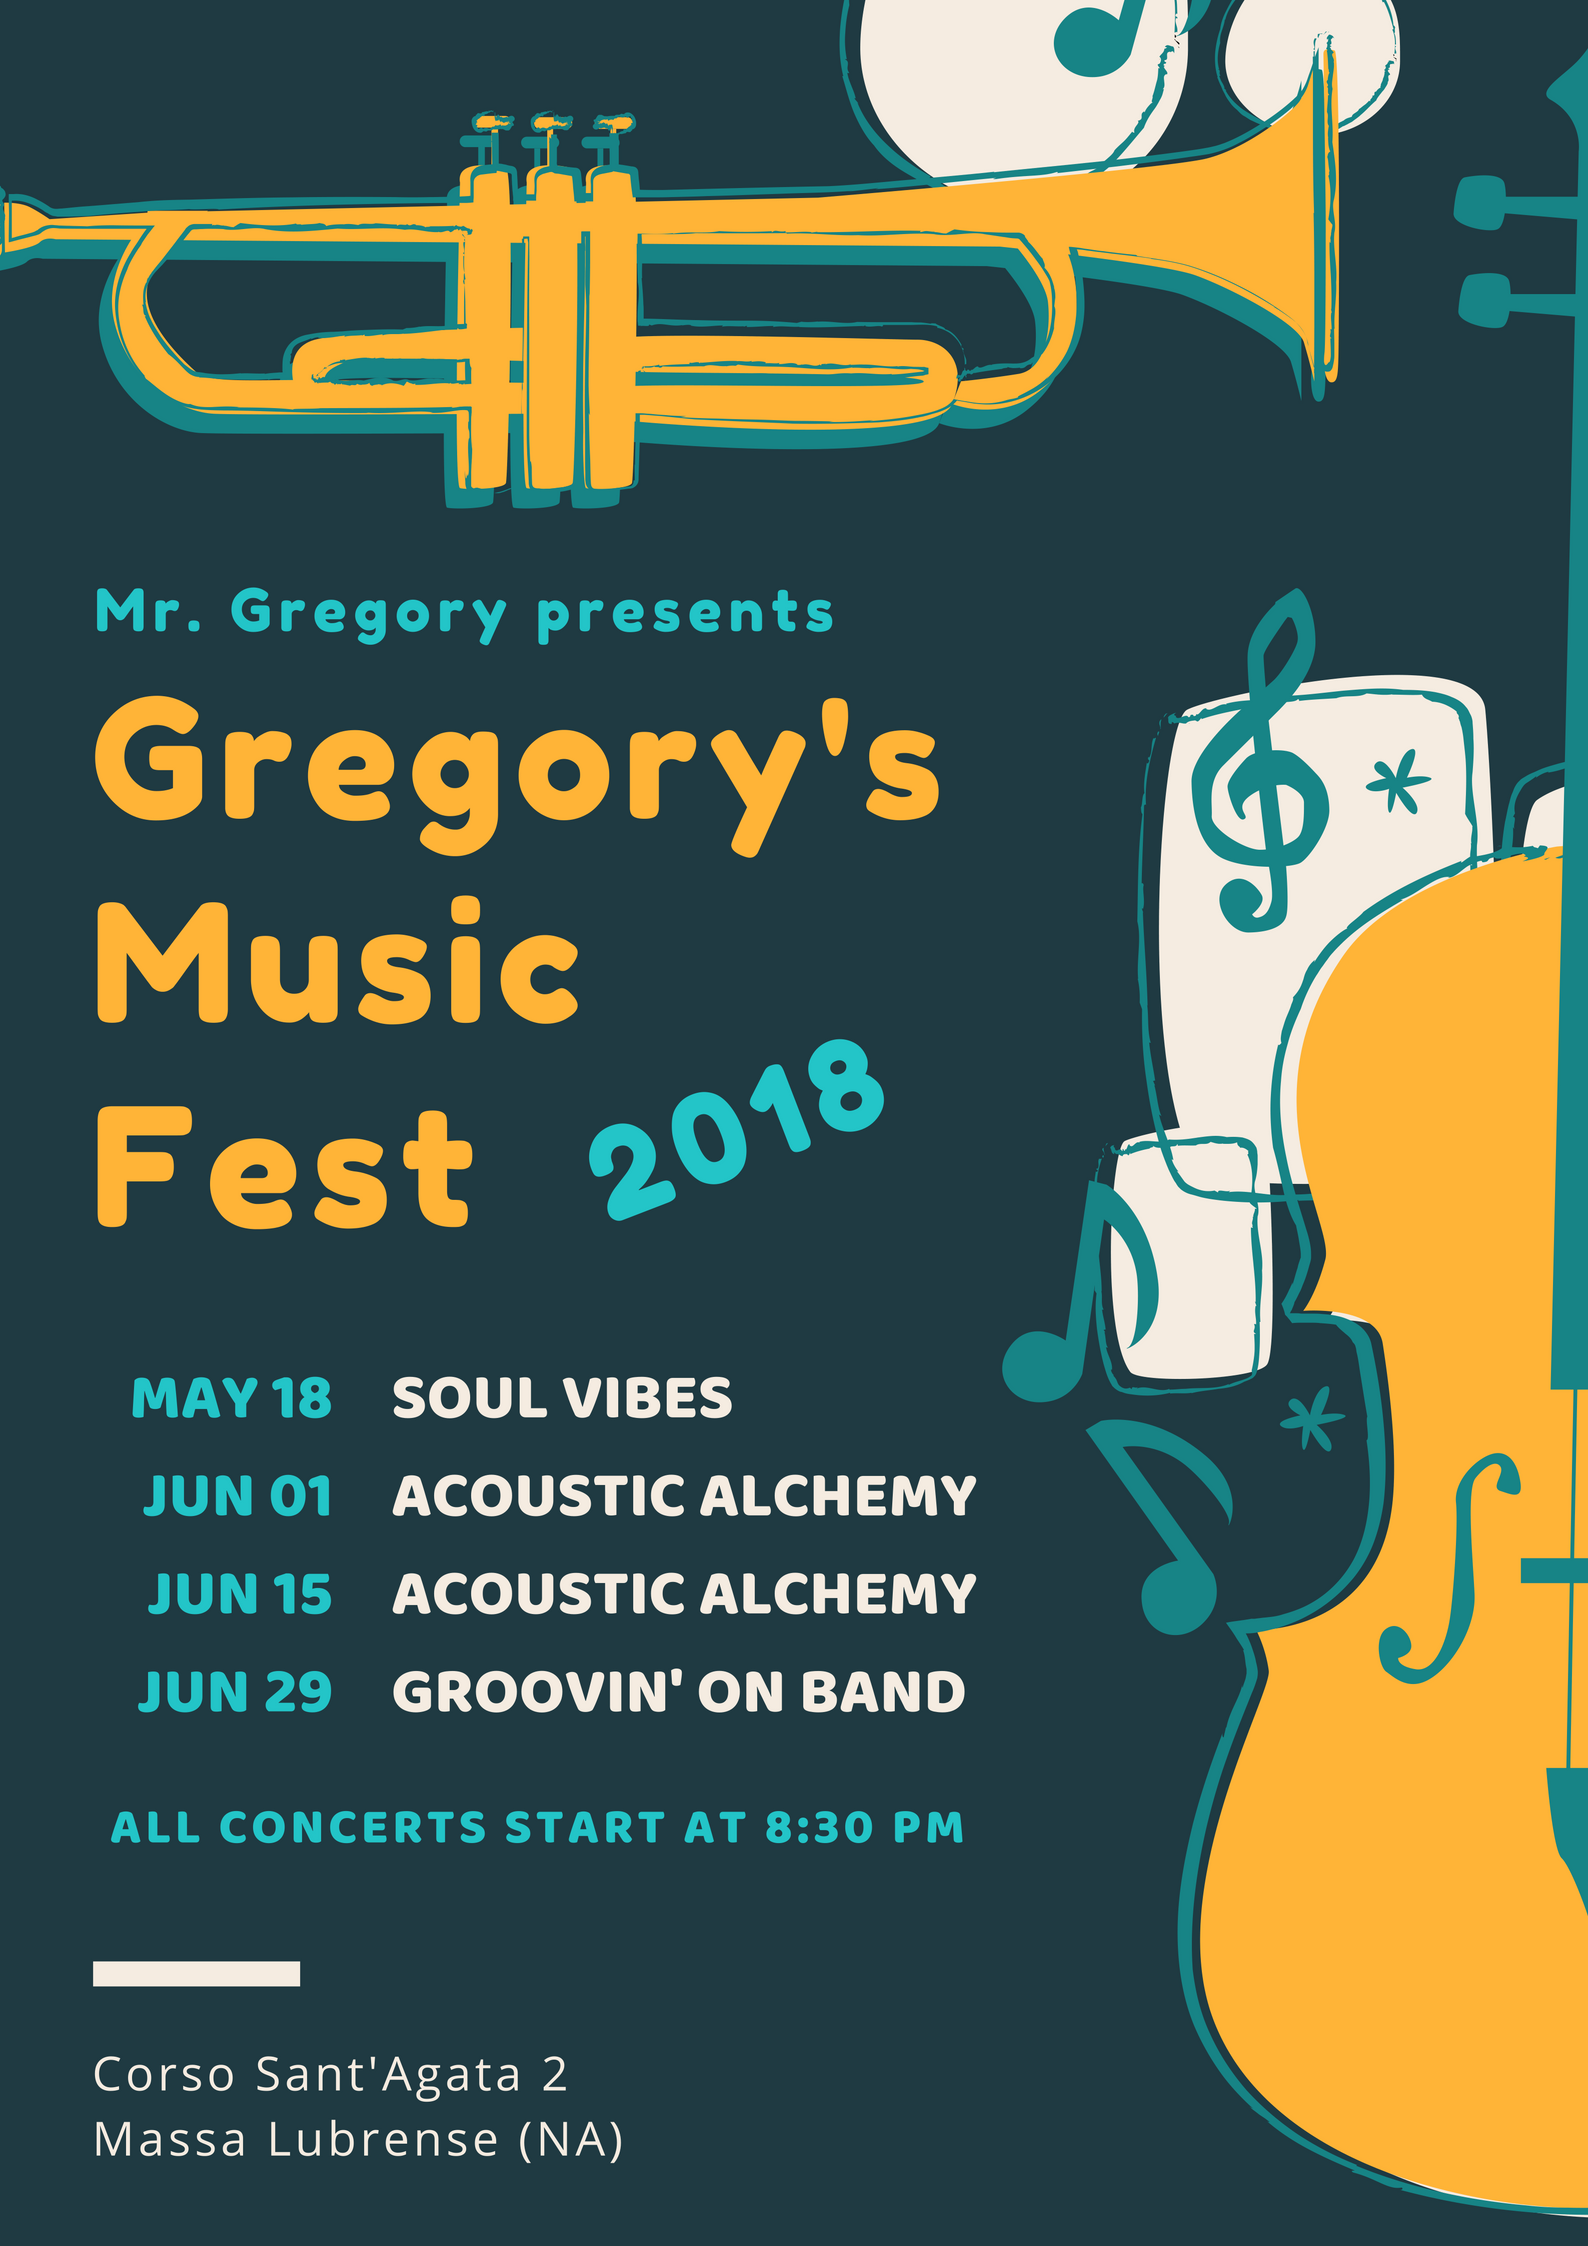 Gregory's Music Fest 2018 – Groovin' On Band